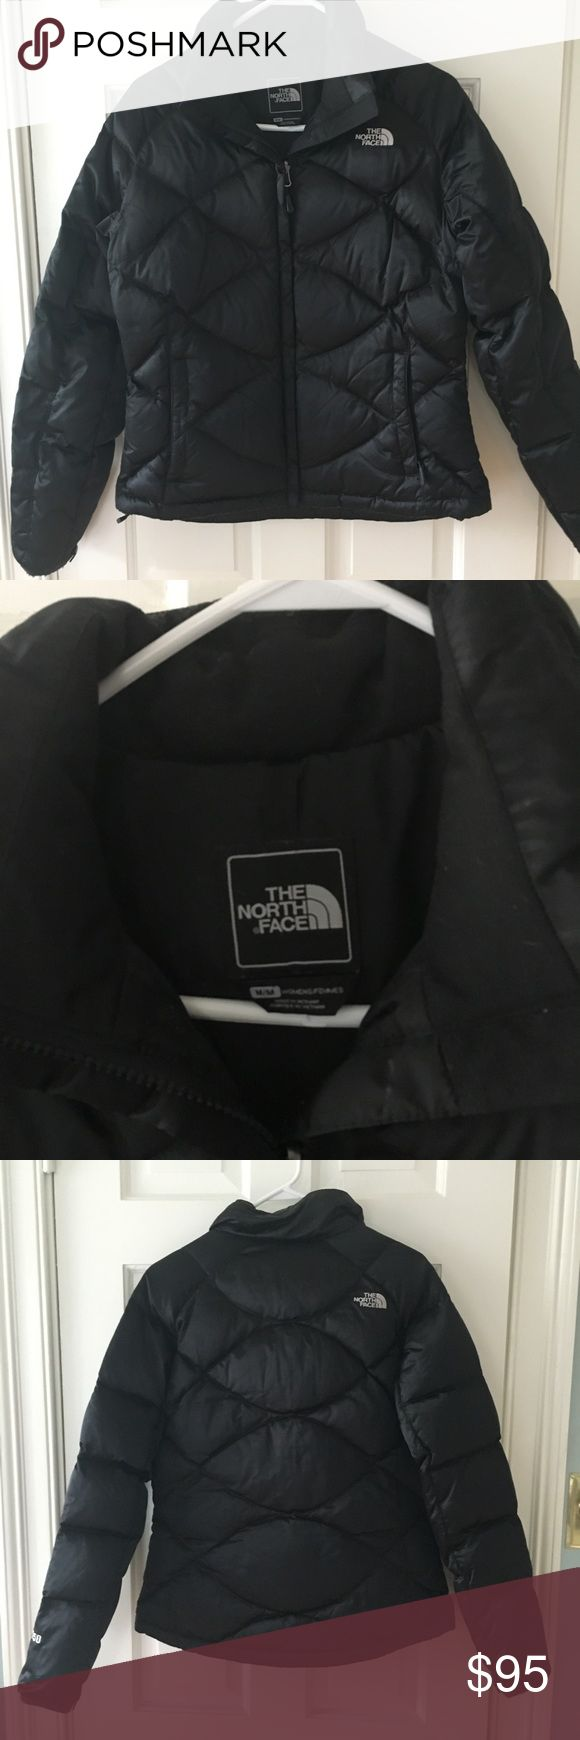 The North Face ladies down jacket.  Like new. Black down jacket.  Barely worn.  Ladies winter jacket.  The North Face. The North Face Jackets & Coats Puffers